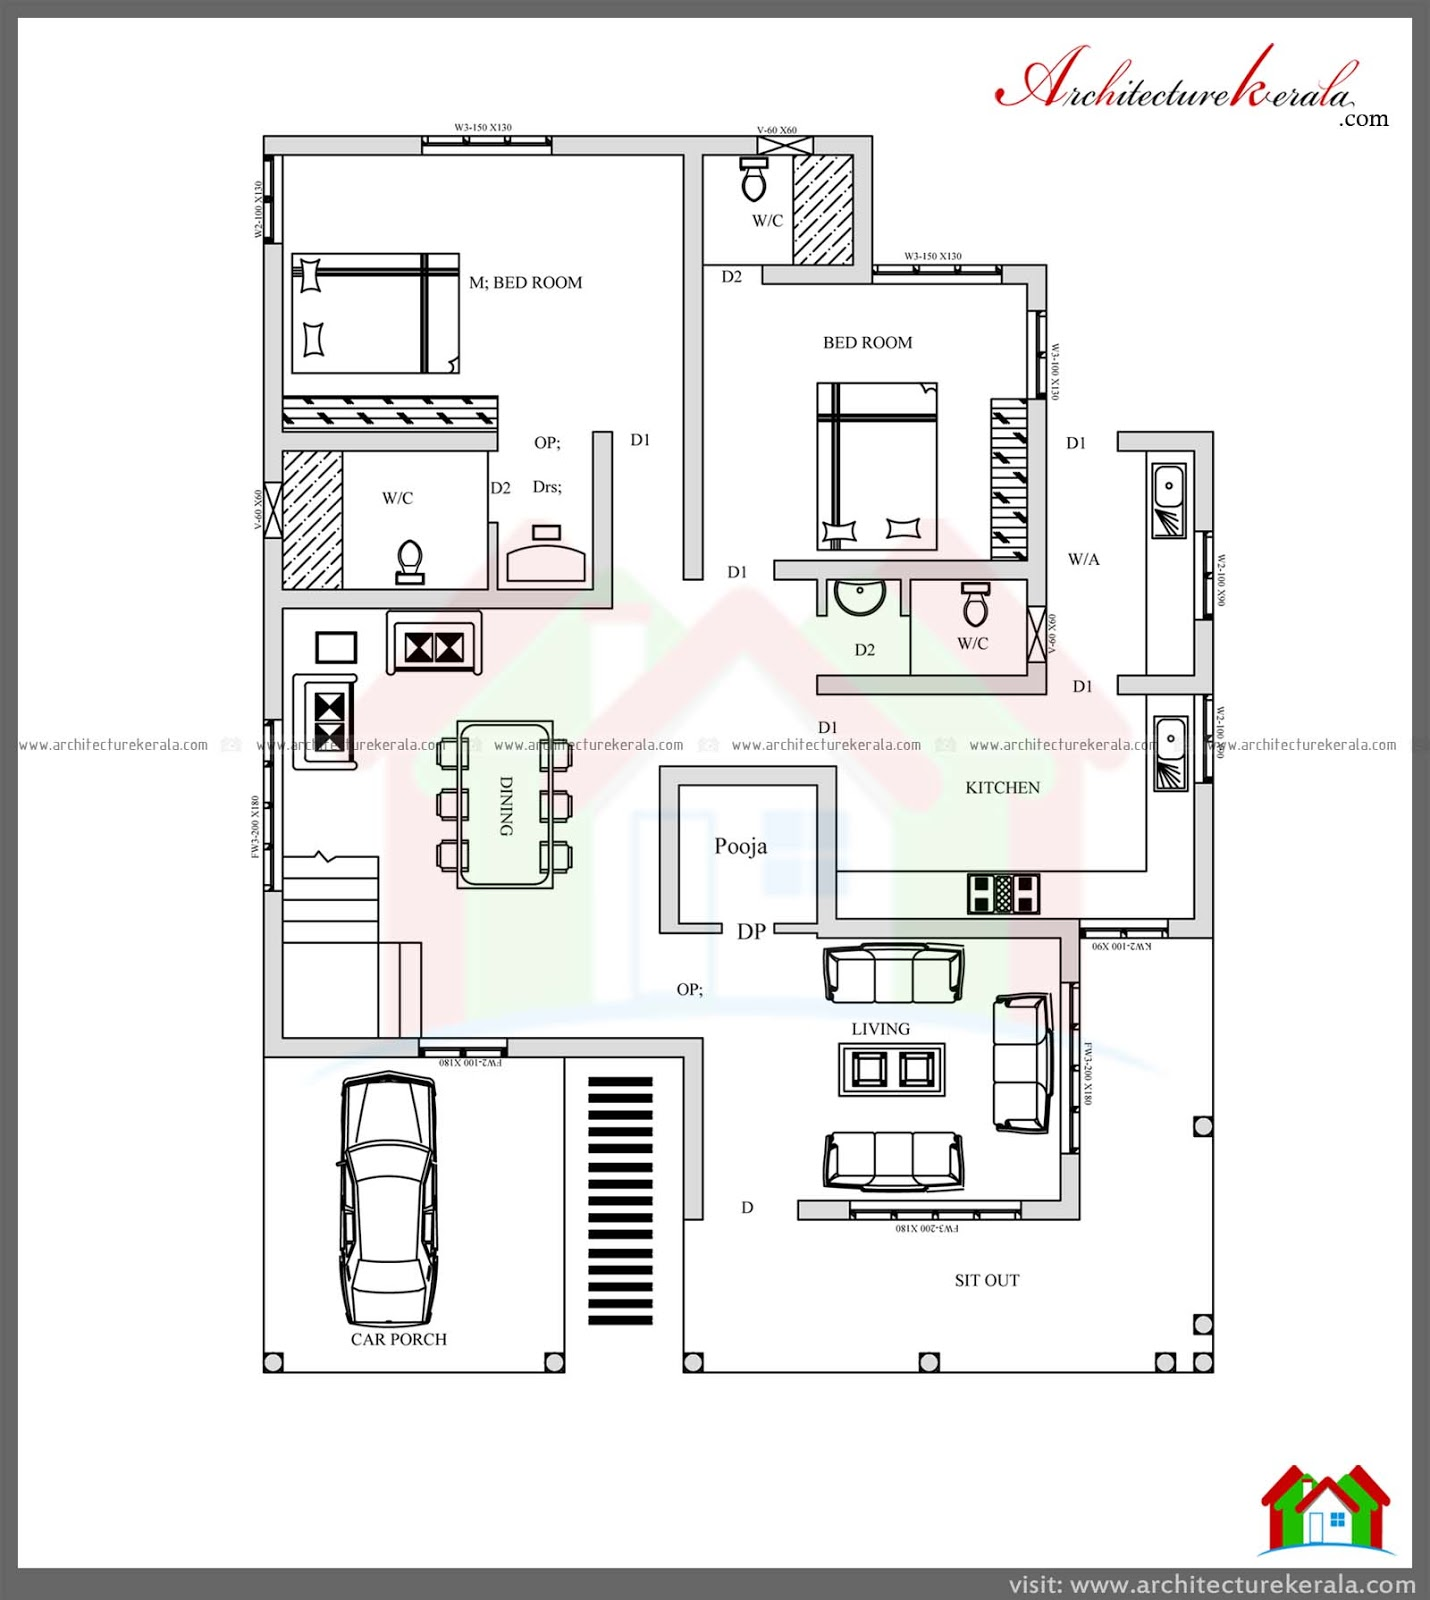 4 bed house plan with pooja room architecture kerala for Home plan in kerala